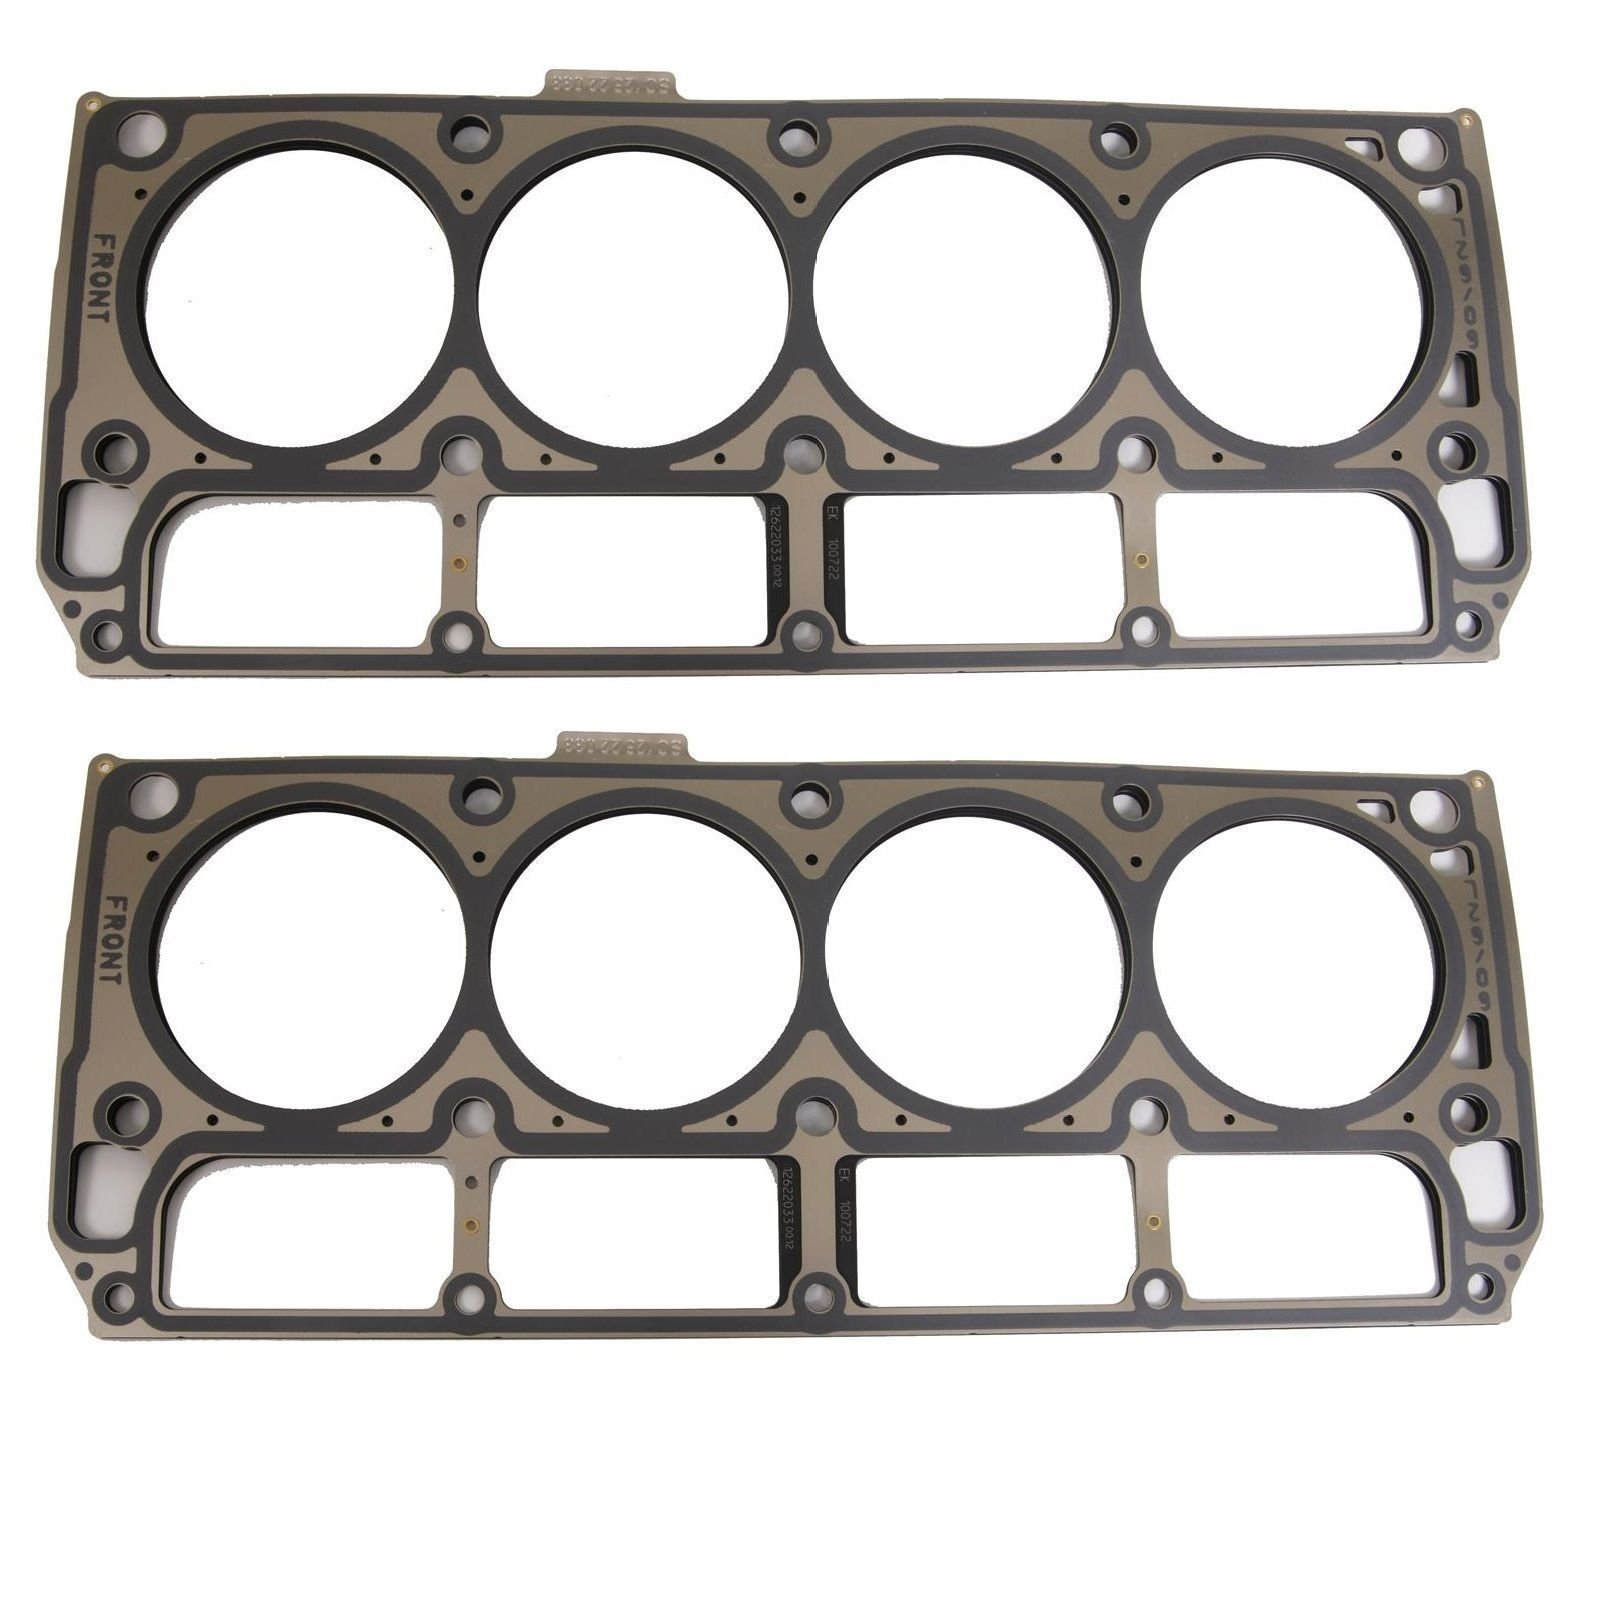 Brian Tooley Racing LS9 Cylinder Head Gaskets MLS PAIR Turbo Multi Layer 4.100 Bore by Michigan Motorsports